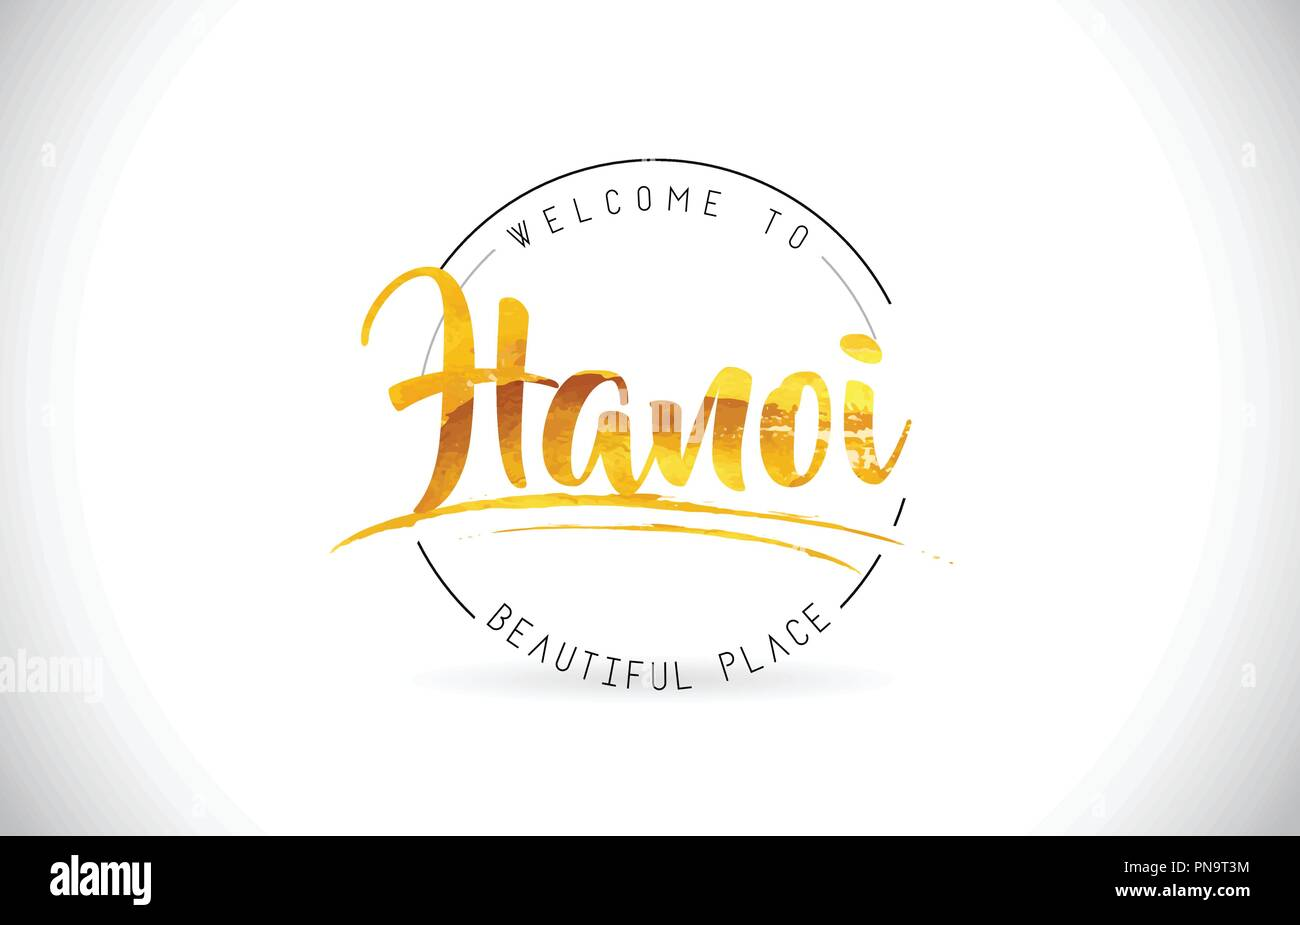 Hanoi Welcome To Word Text with Handwritten Font and Golden Texture Design Illustration Vector. - Stock Vector